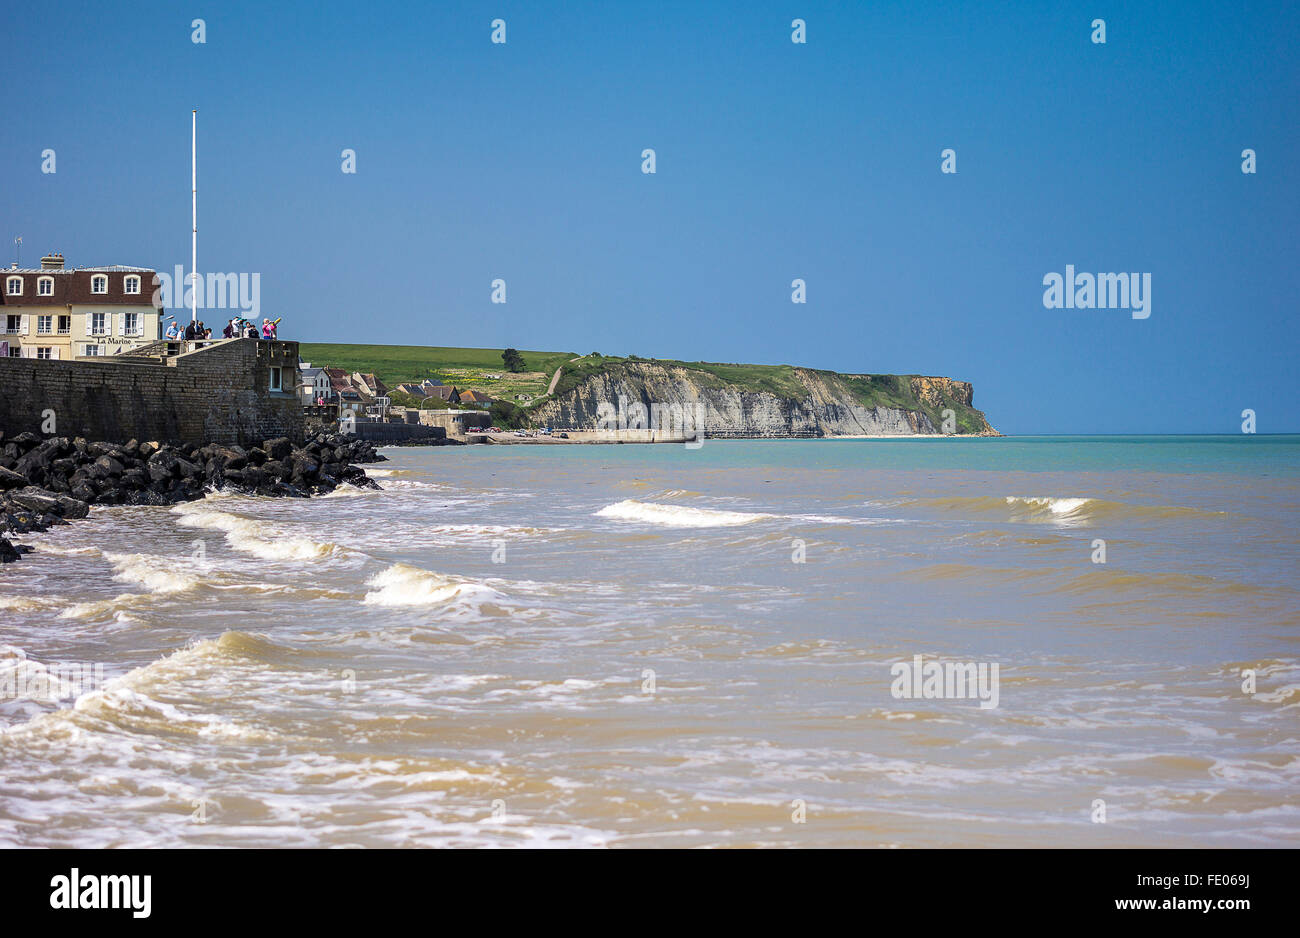 France, Normandy, Ouistreham, the places of the second World War lending - Stock Image